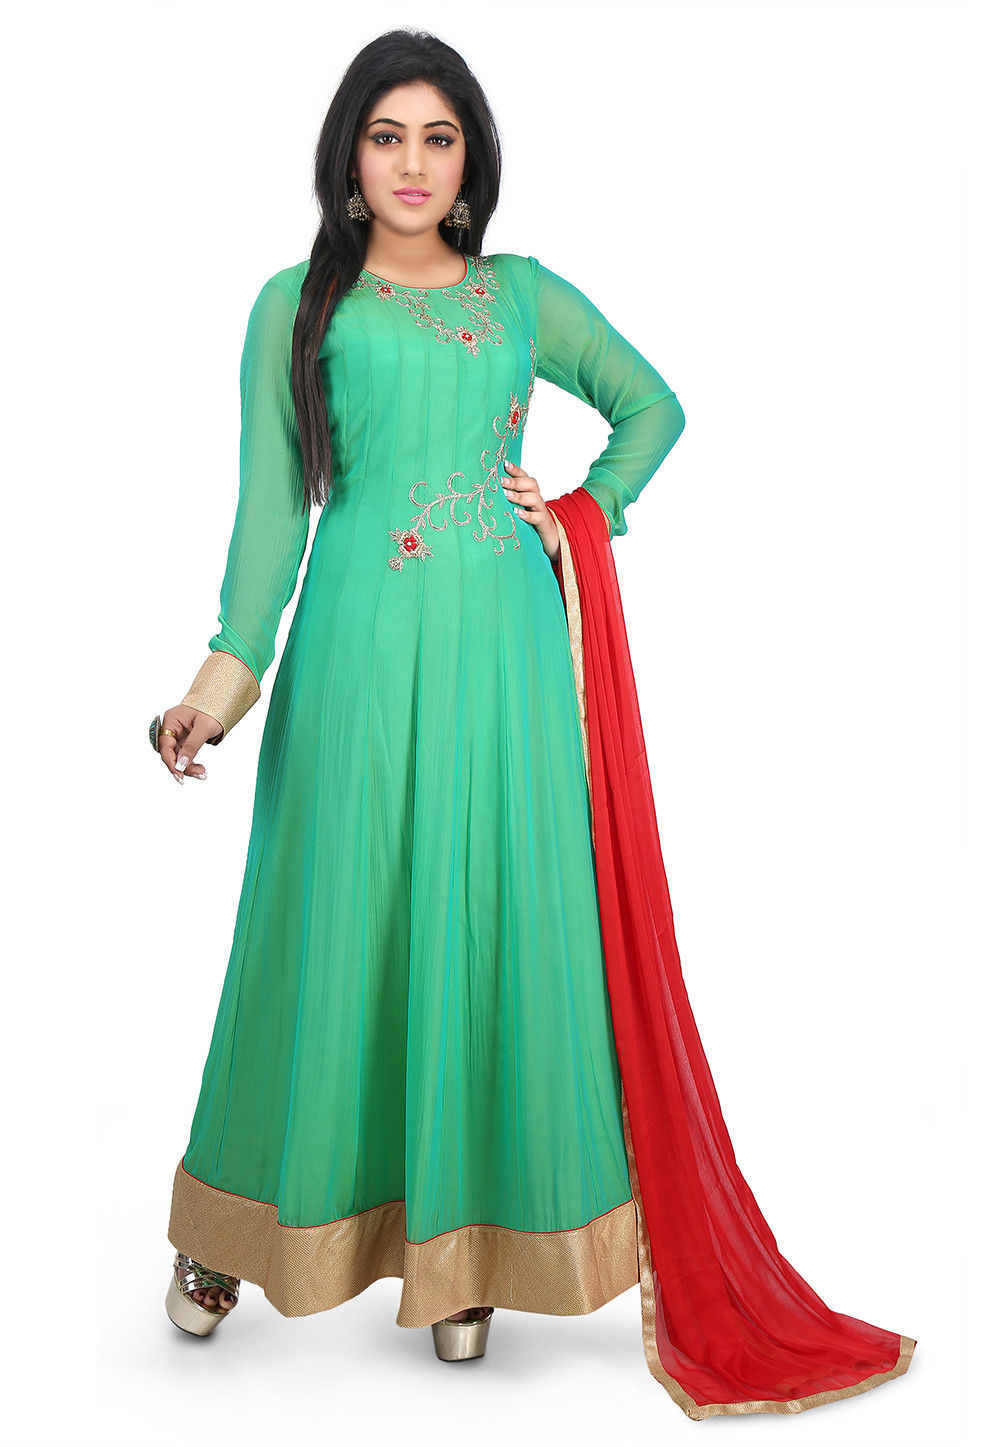 Hand Embroidered Georgette Abaya Style Suit in Teal Green